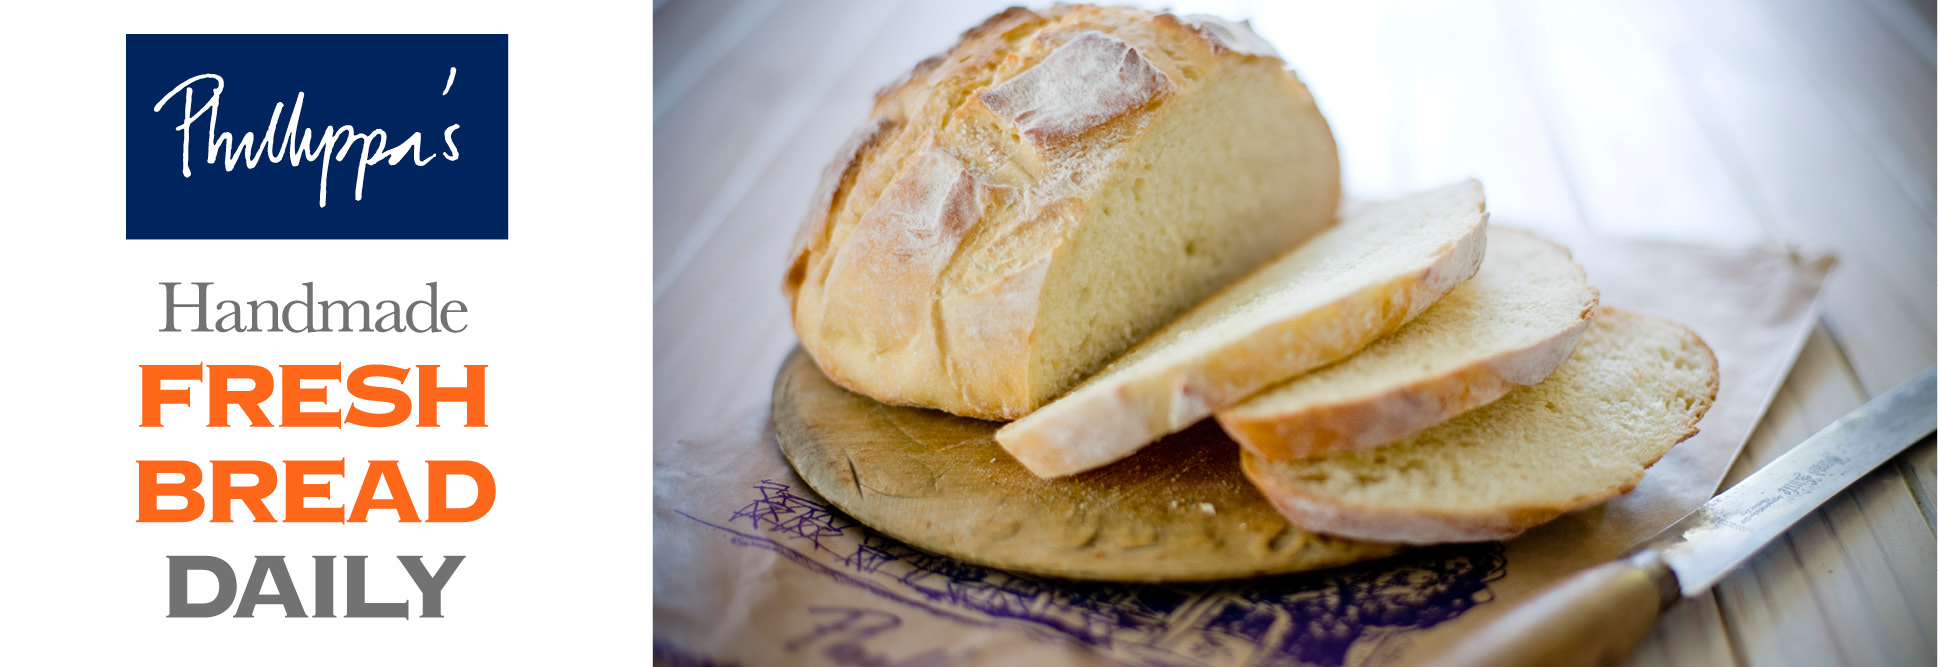 CAS_website_banner_P_bread.jpg